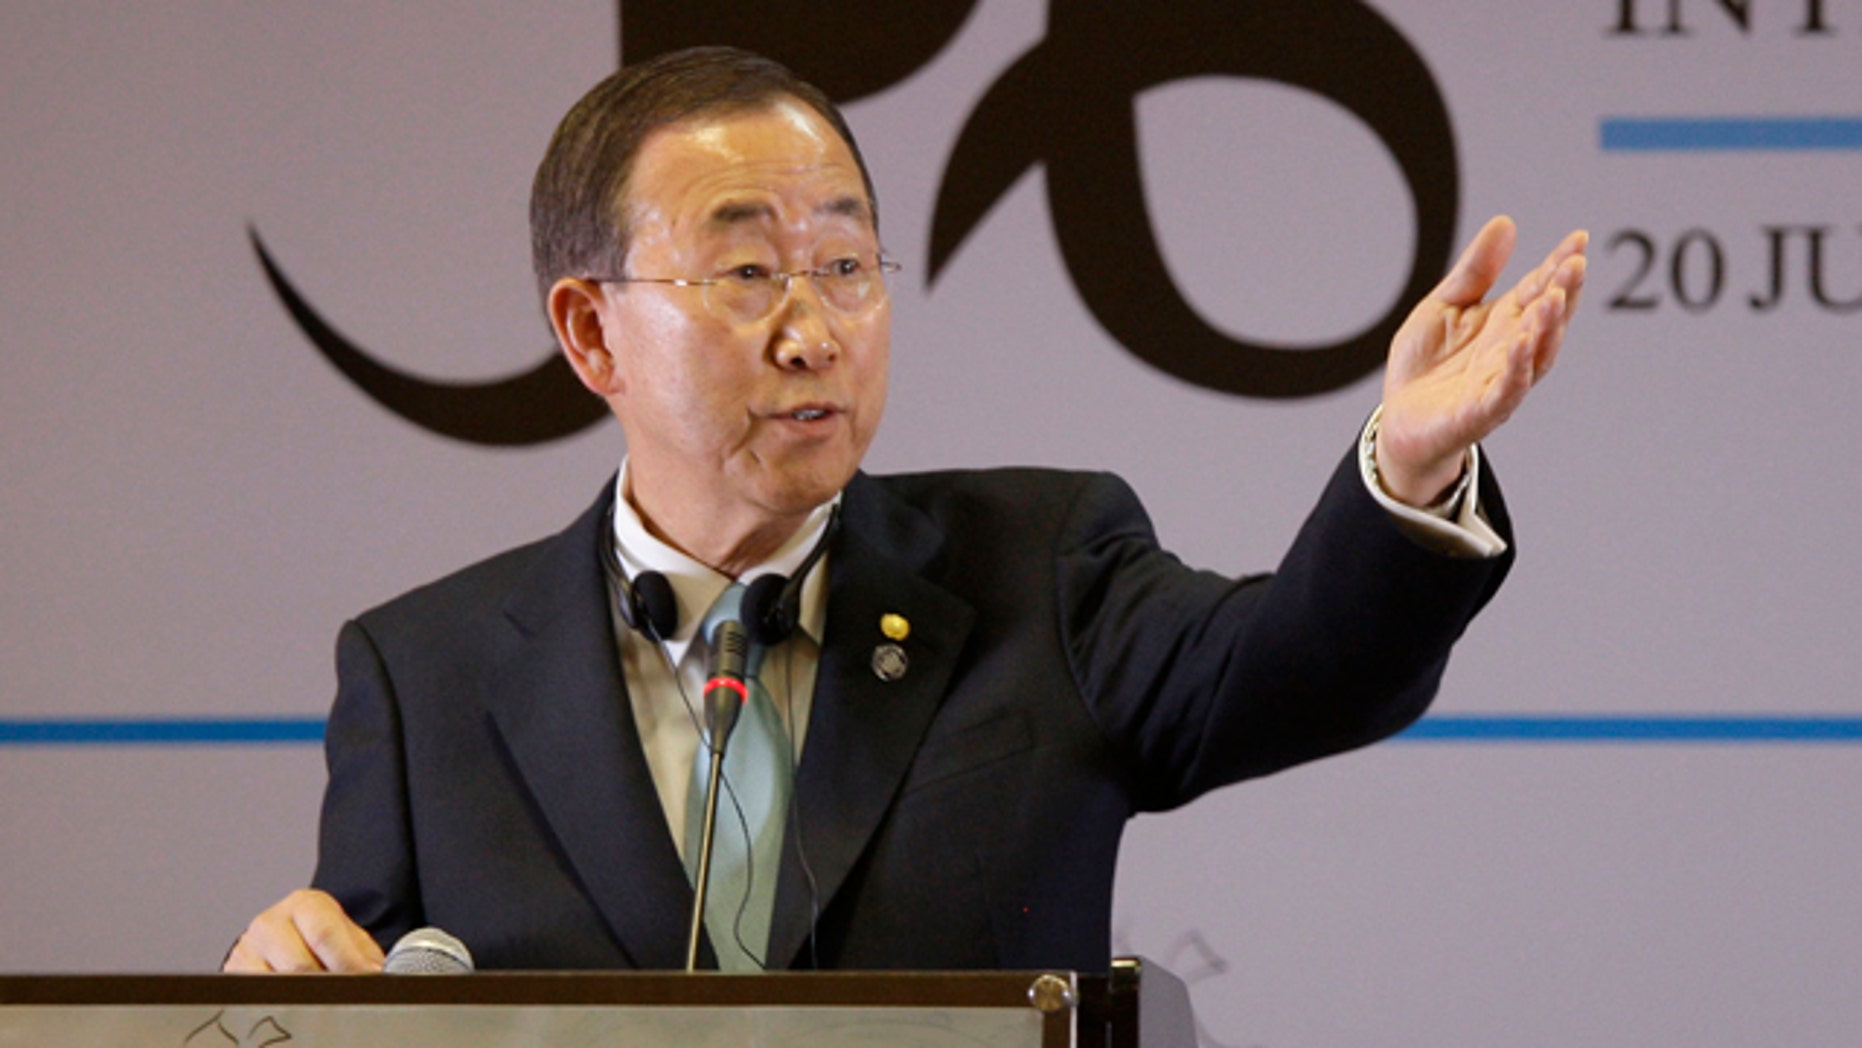 July 20, 2010: U.N. Secretary General Ban Ki-Moon takes a question during a joint press conference with Afghan President Hamid Karzai.